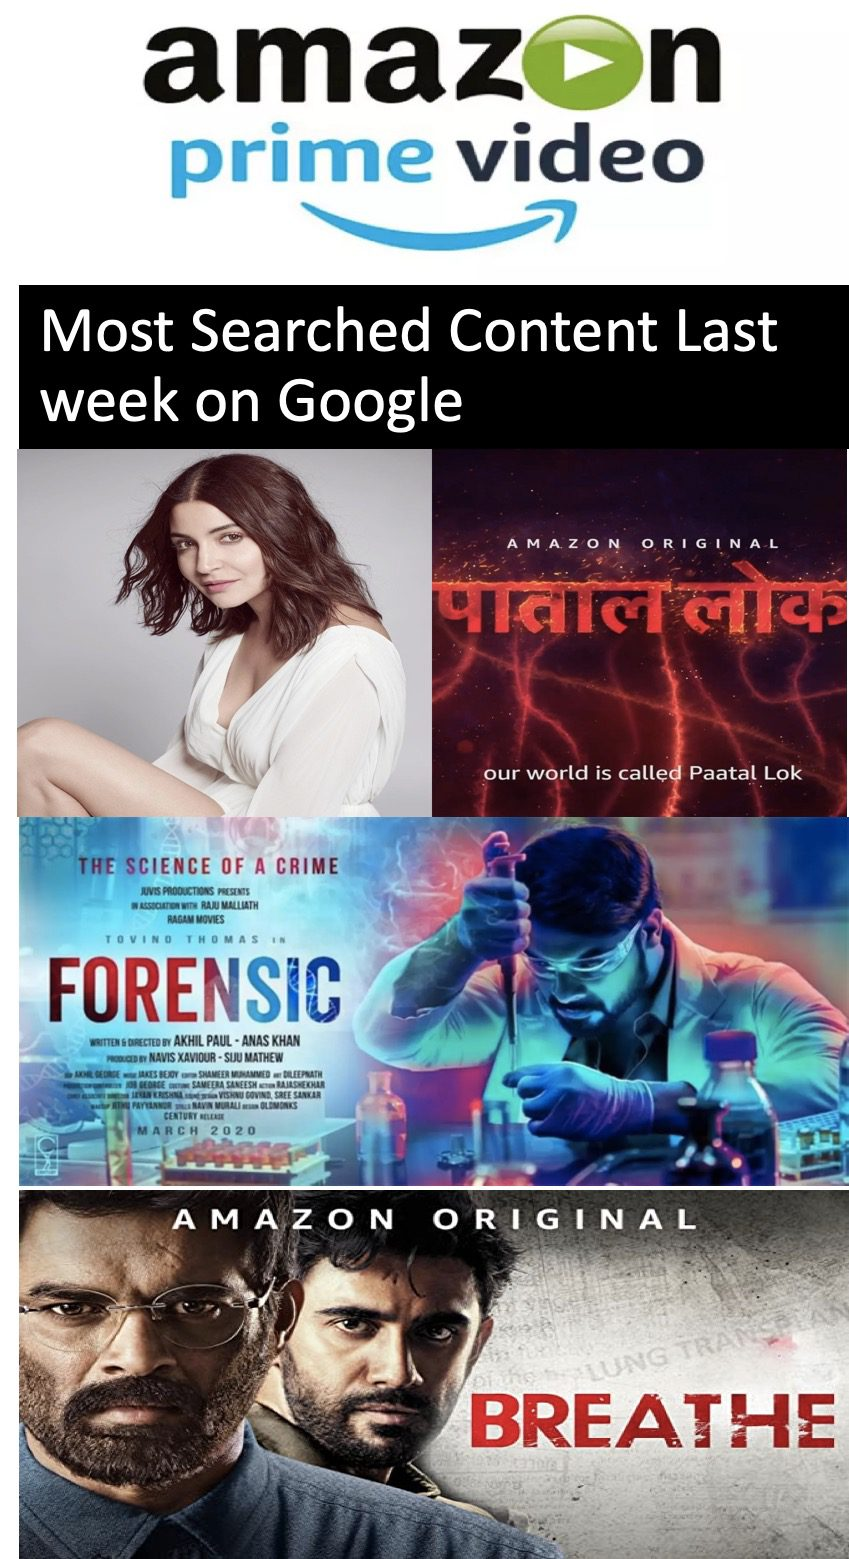 Paatal Lok Leads in Amazon's Most Searched Content on Google